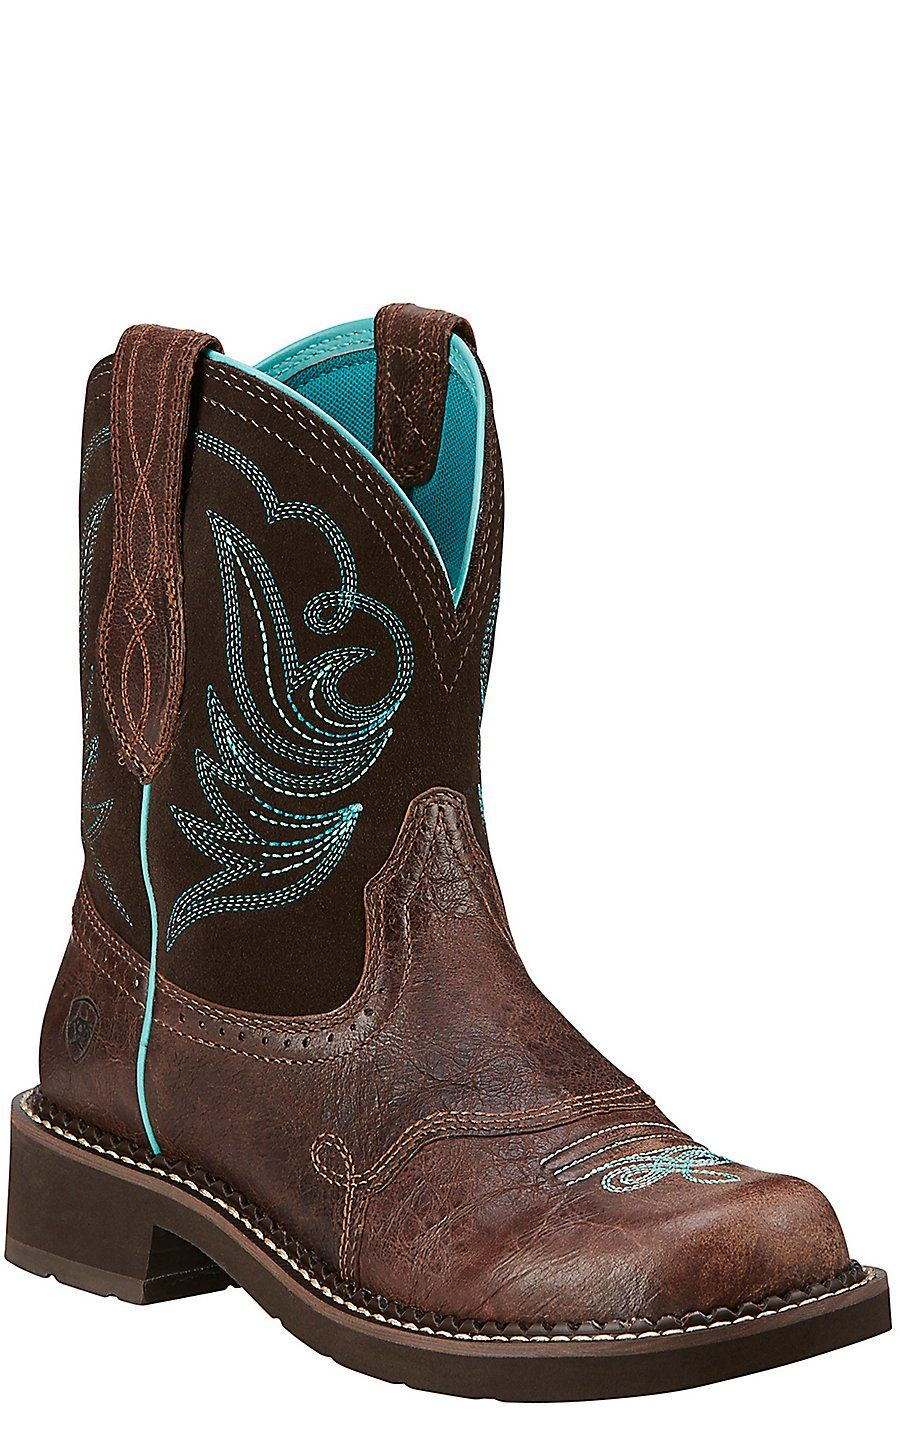 Ariat Fat Baby Boots For Women - Cr Boot